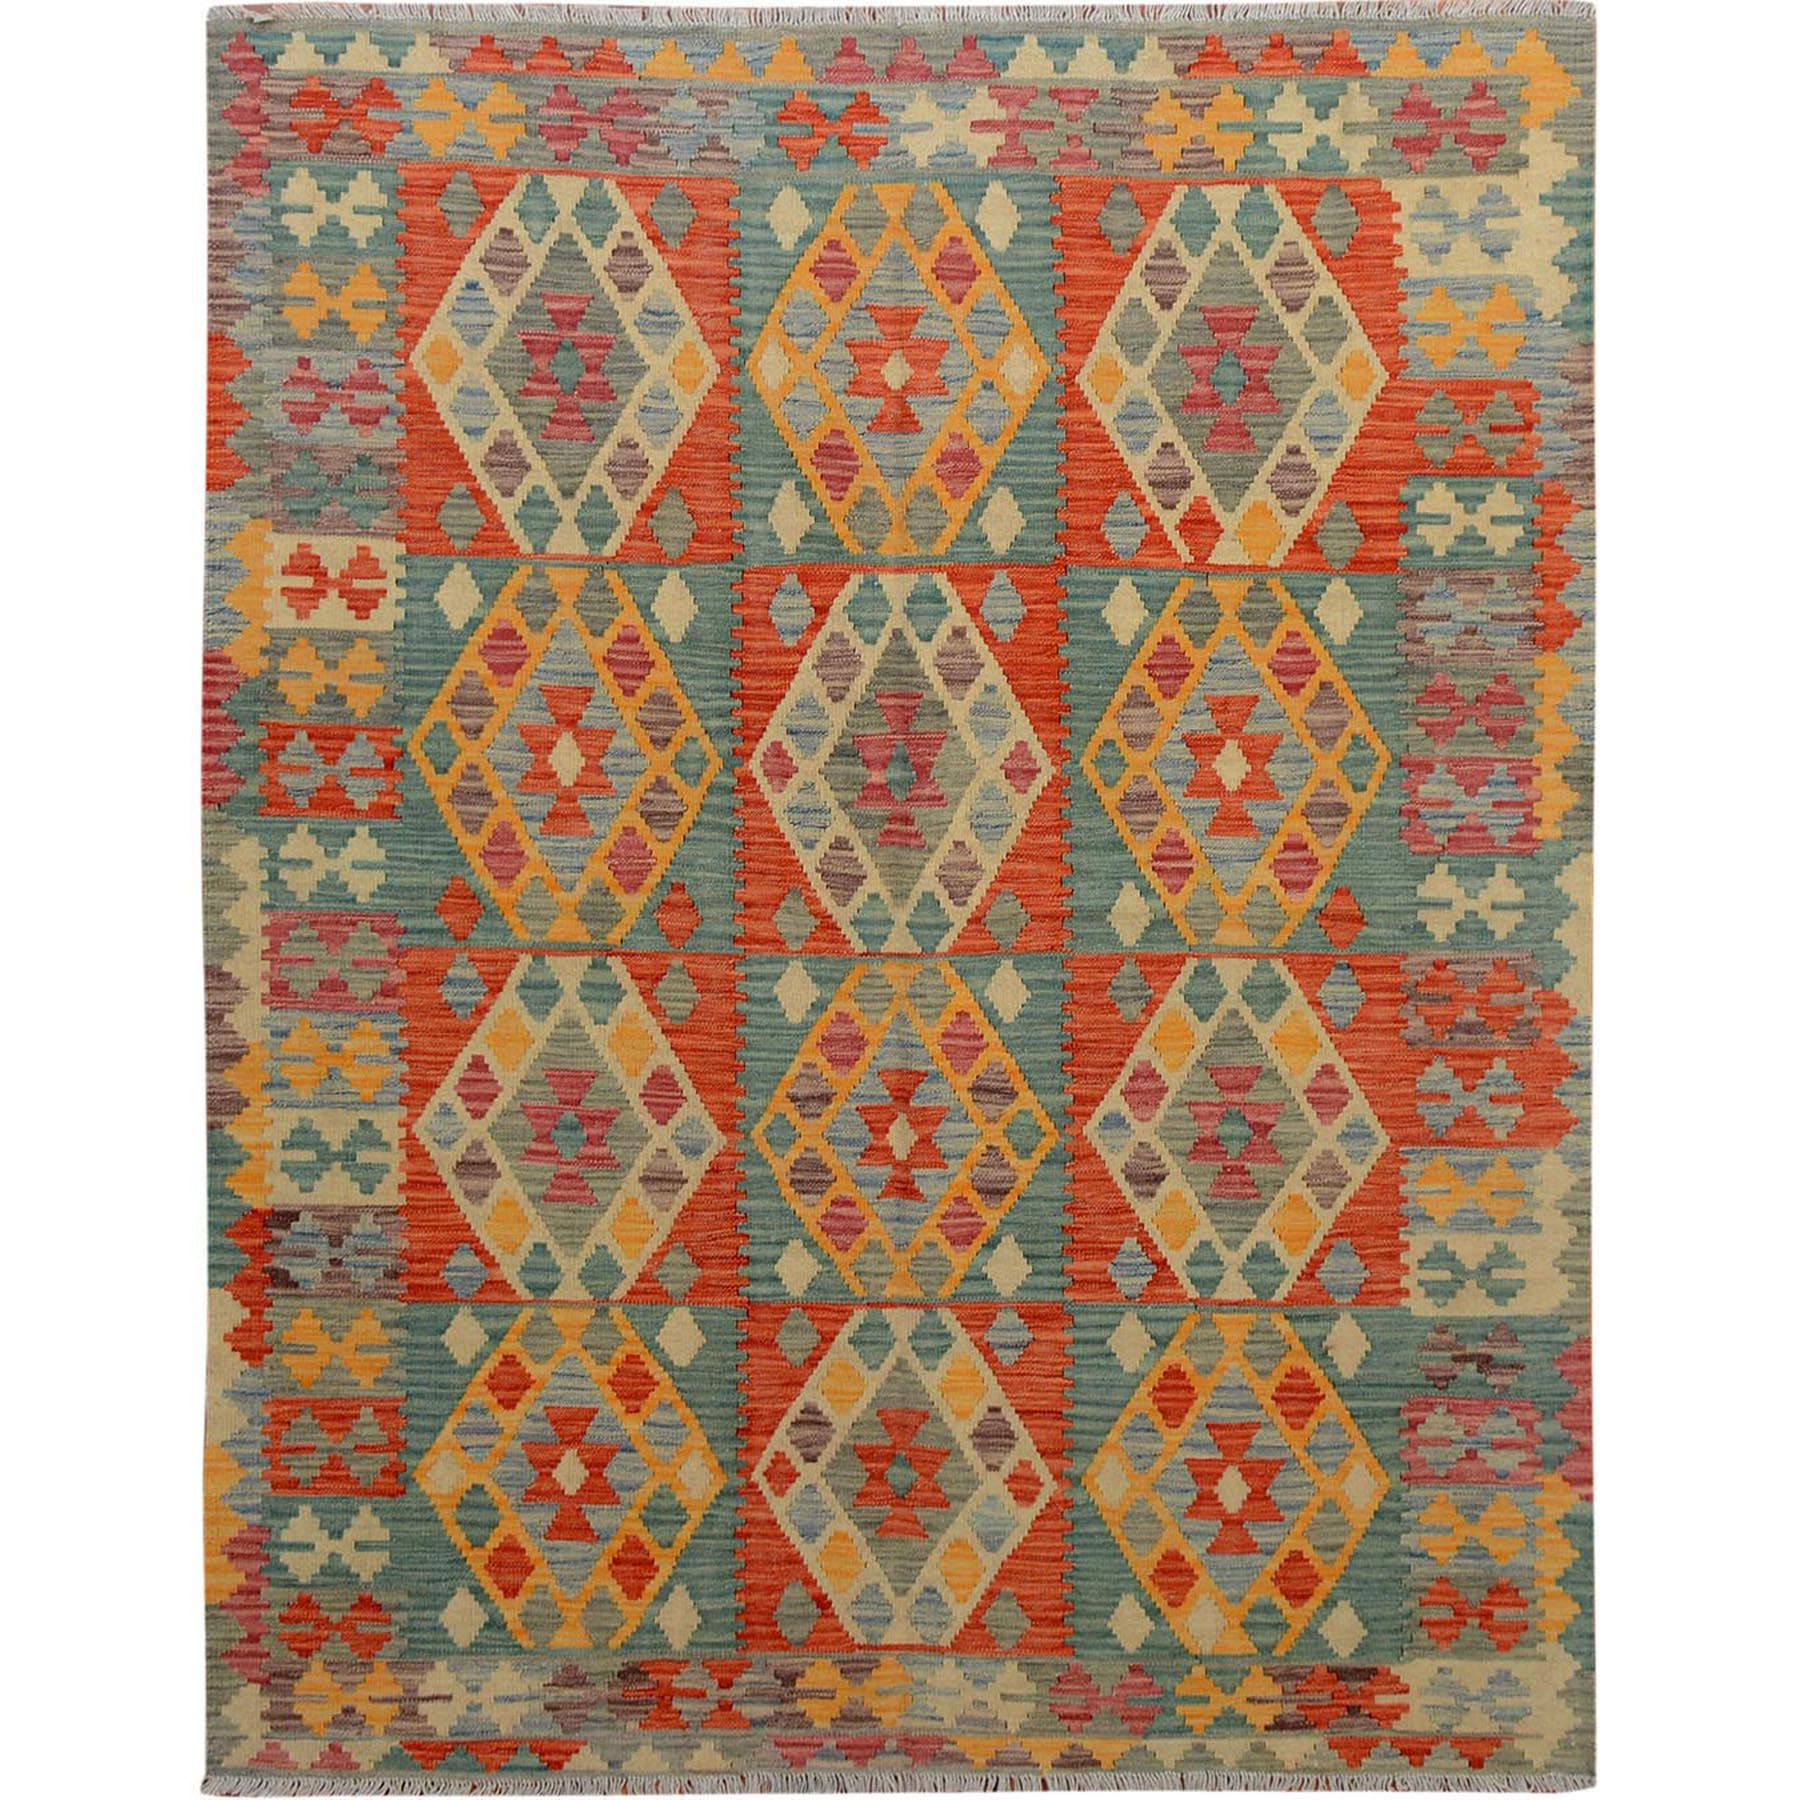 "5'1""x6'6"" Colorful Afghan Reversible Kilim 100% Wool Hand Woven Oriental Rug"